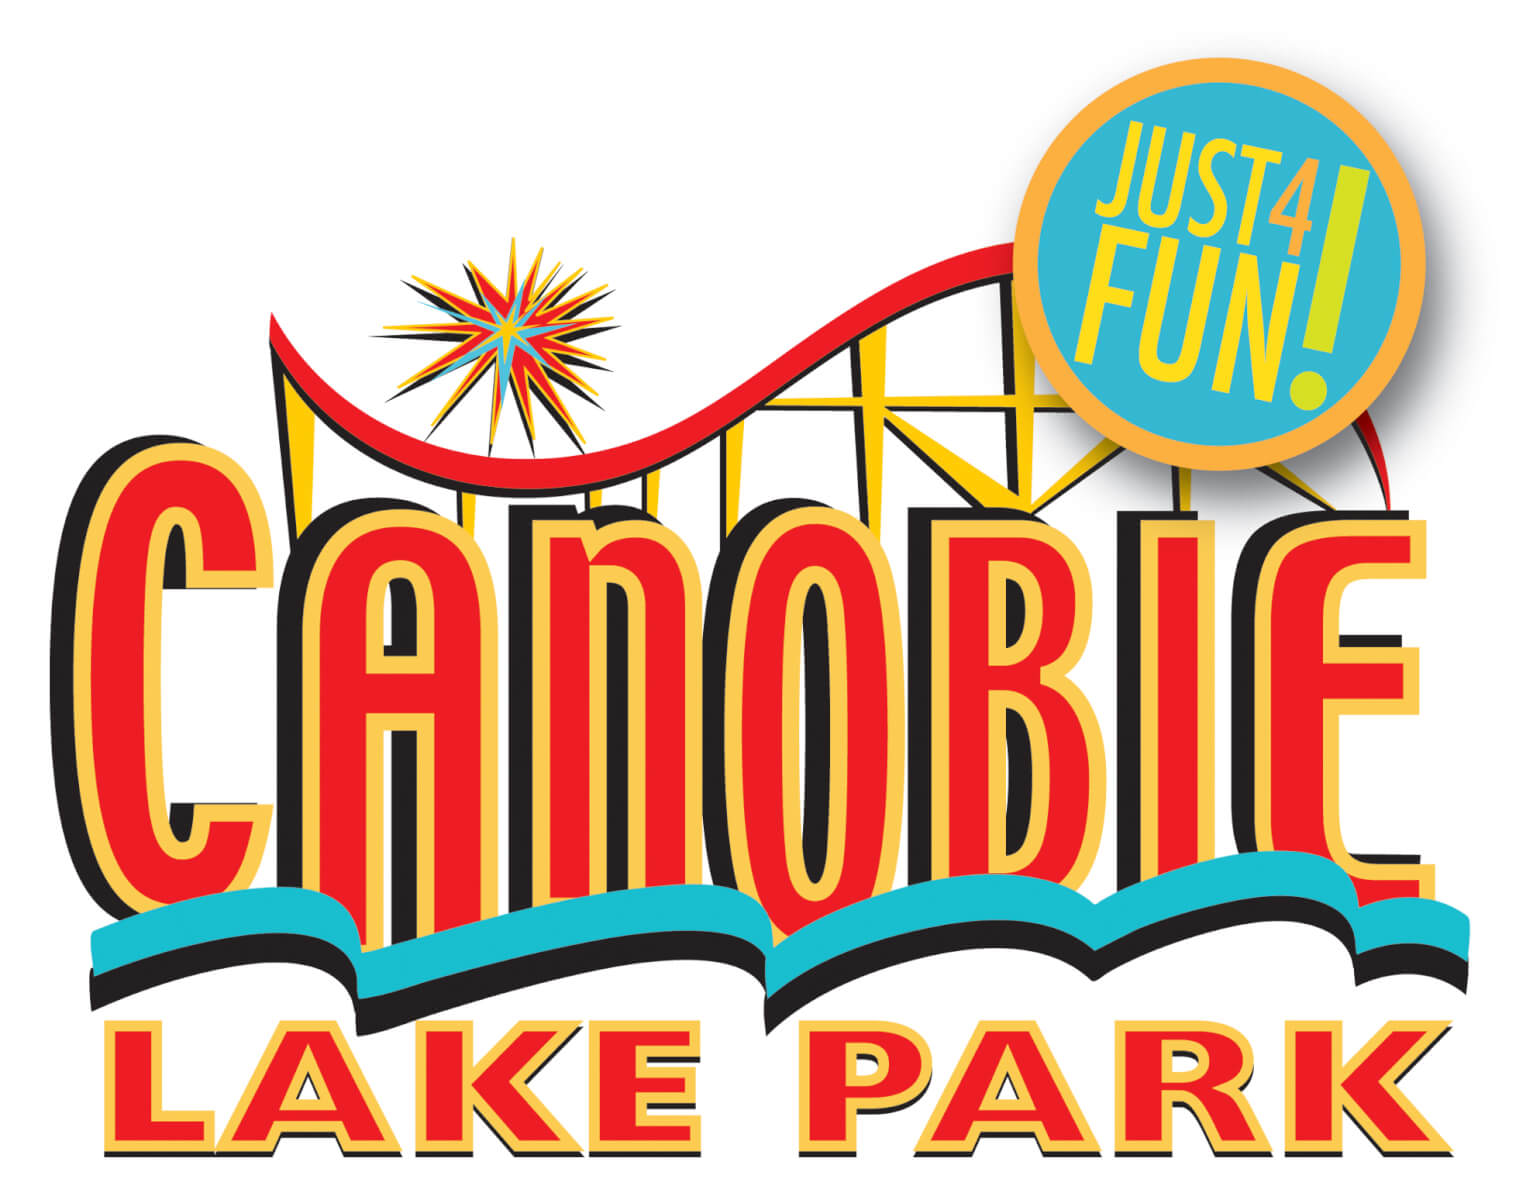 May 2016 Canobie Lake Park Logo CLP_Logo  sc 1 st  Canobie Lake Park & Media | Canobie Lake Park